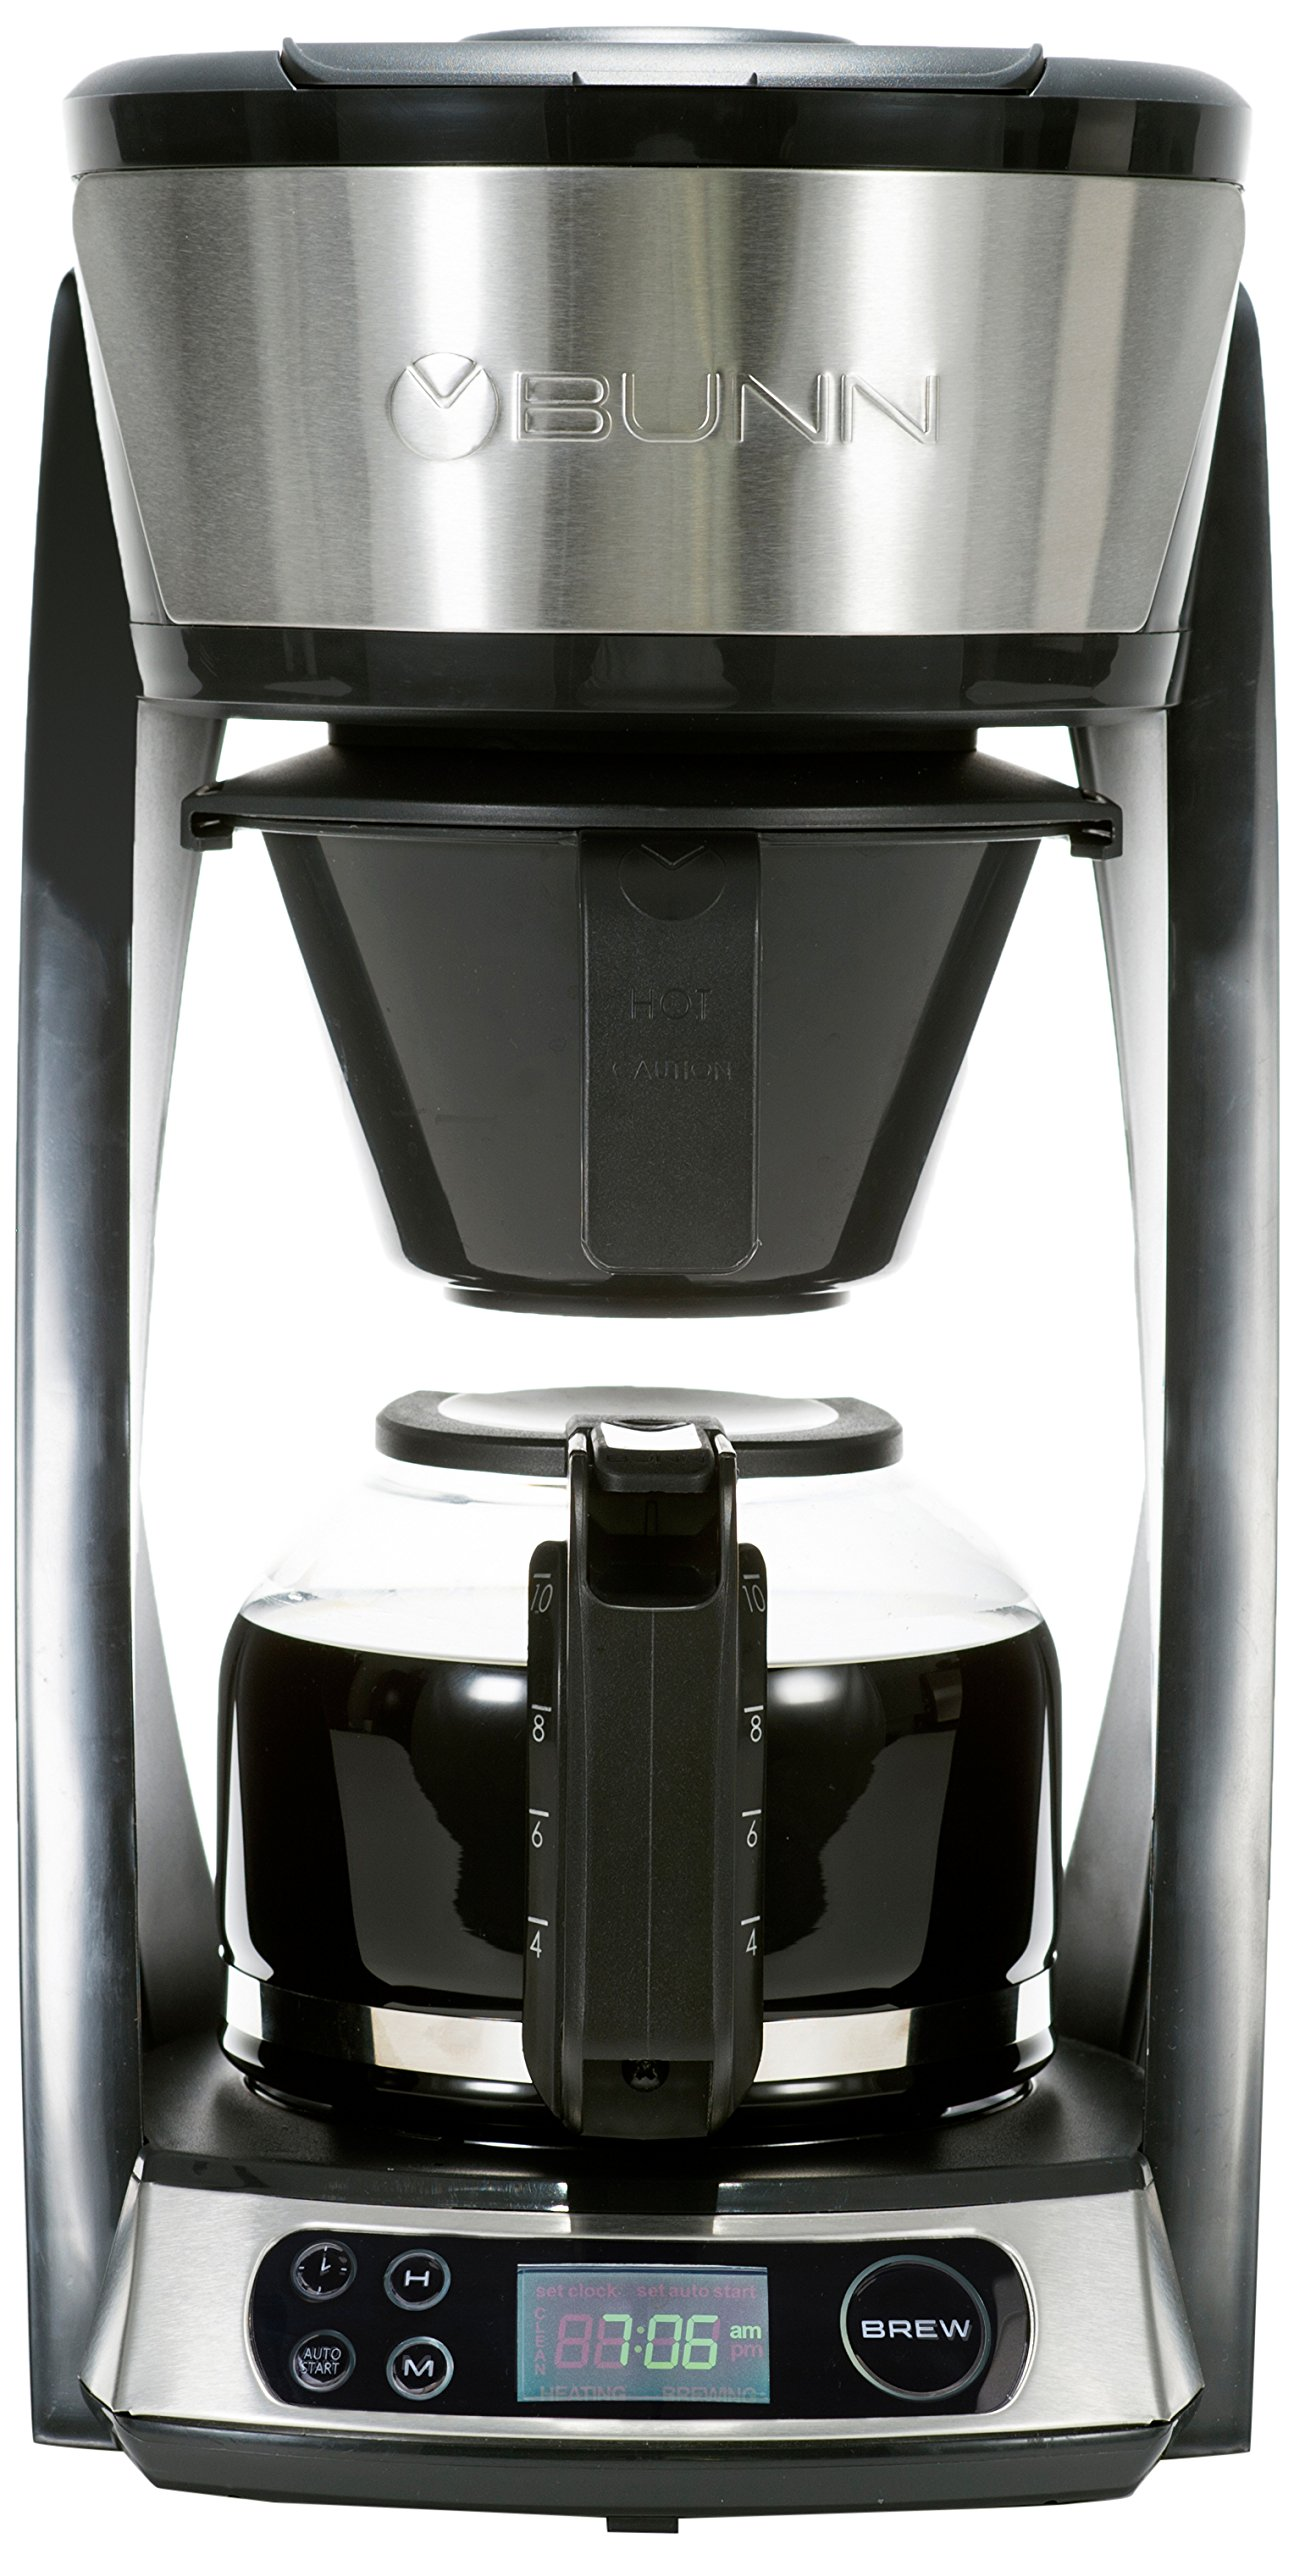 BUNN HB Heat N Brew Programmable Coffee Maker, 10 cup, Stainless Steel by BUNN